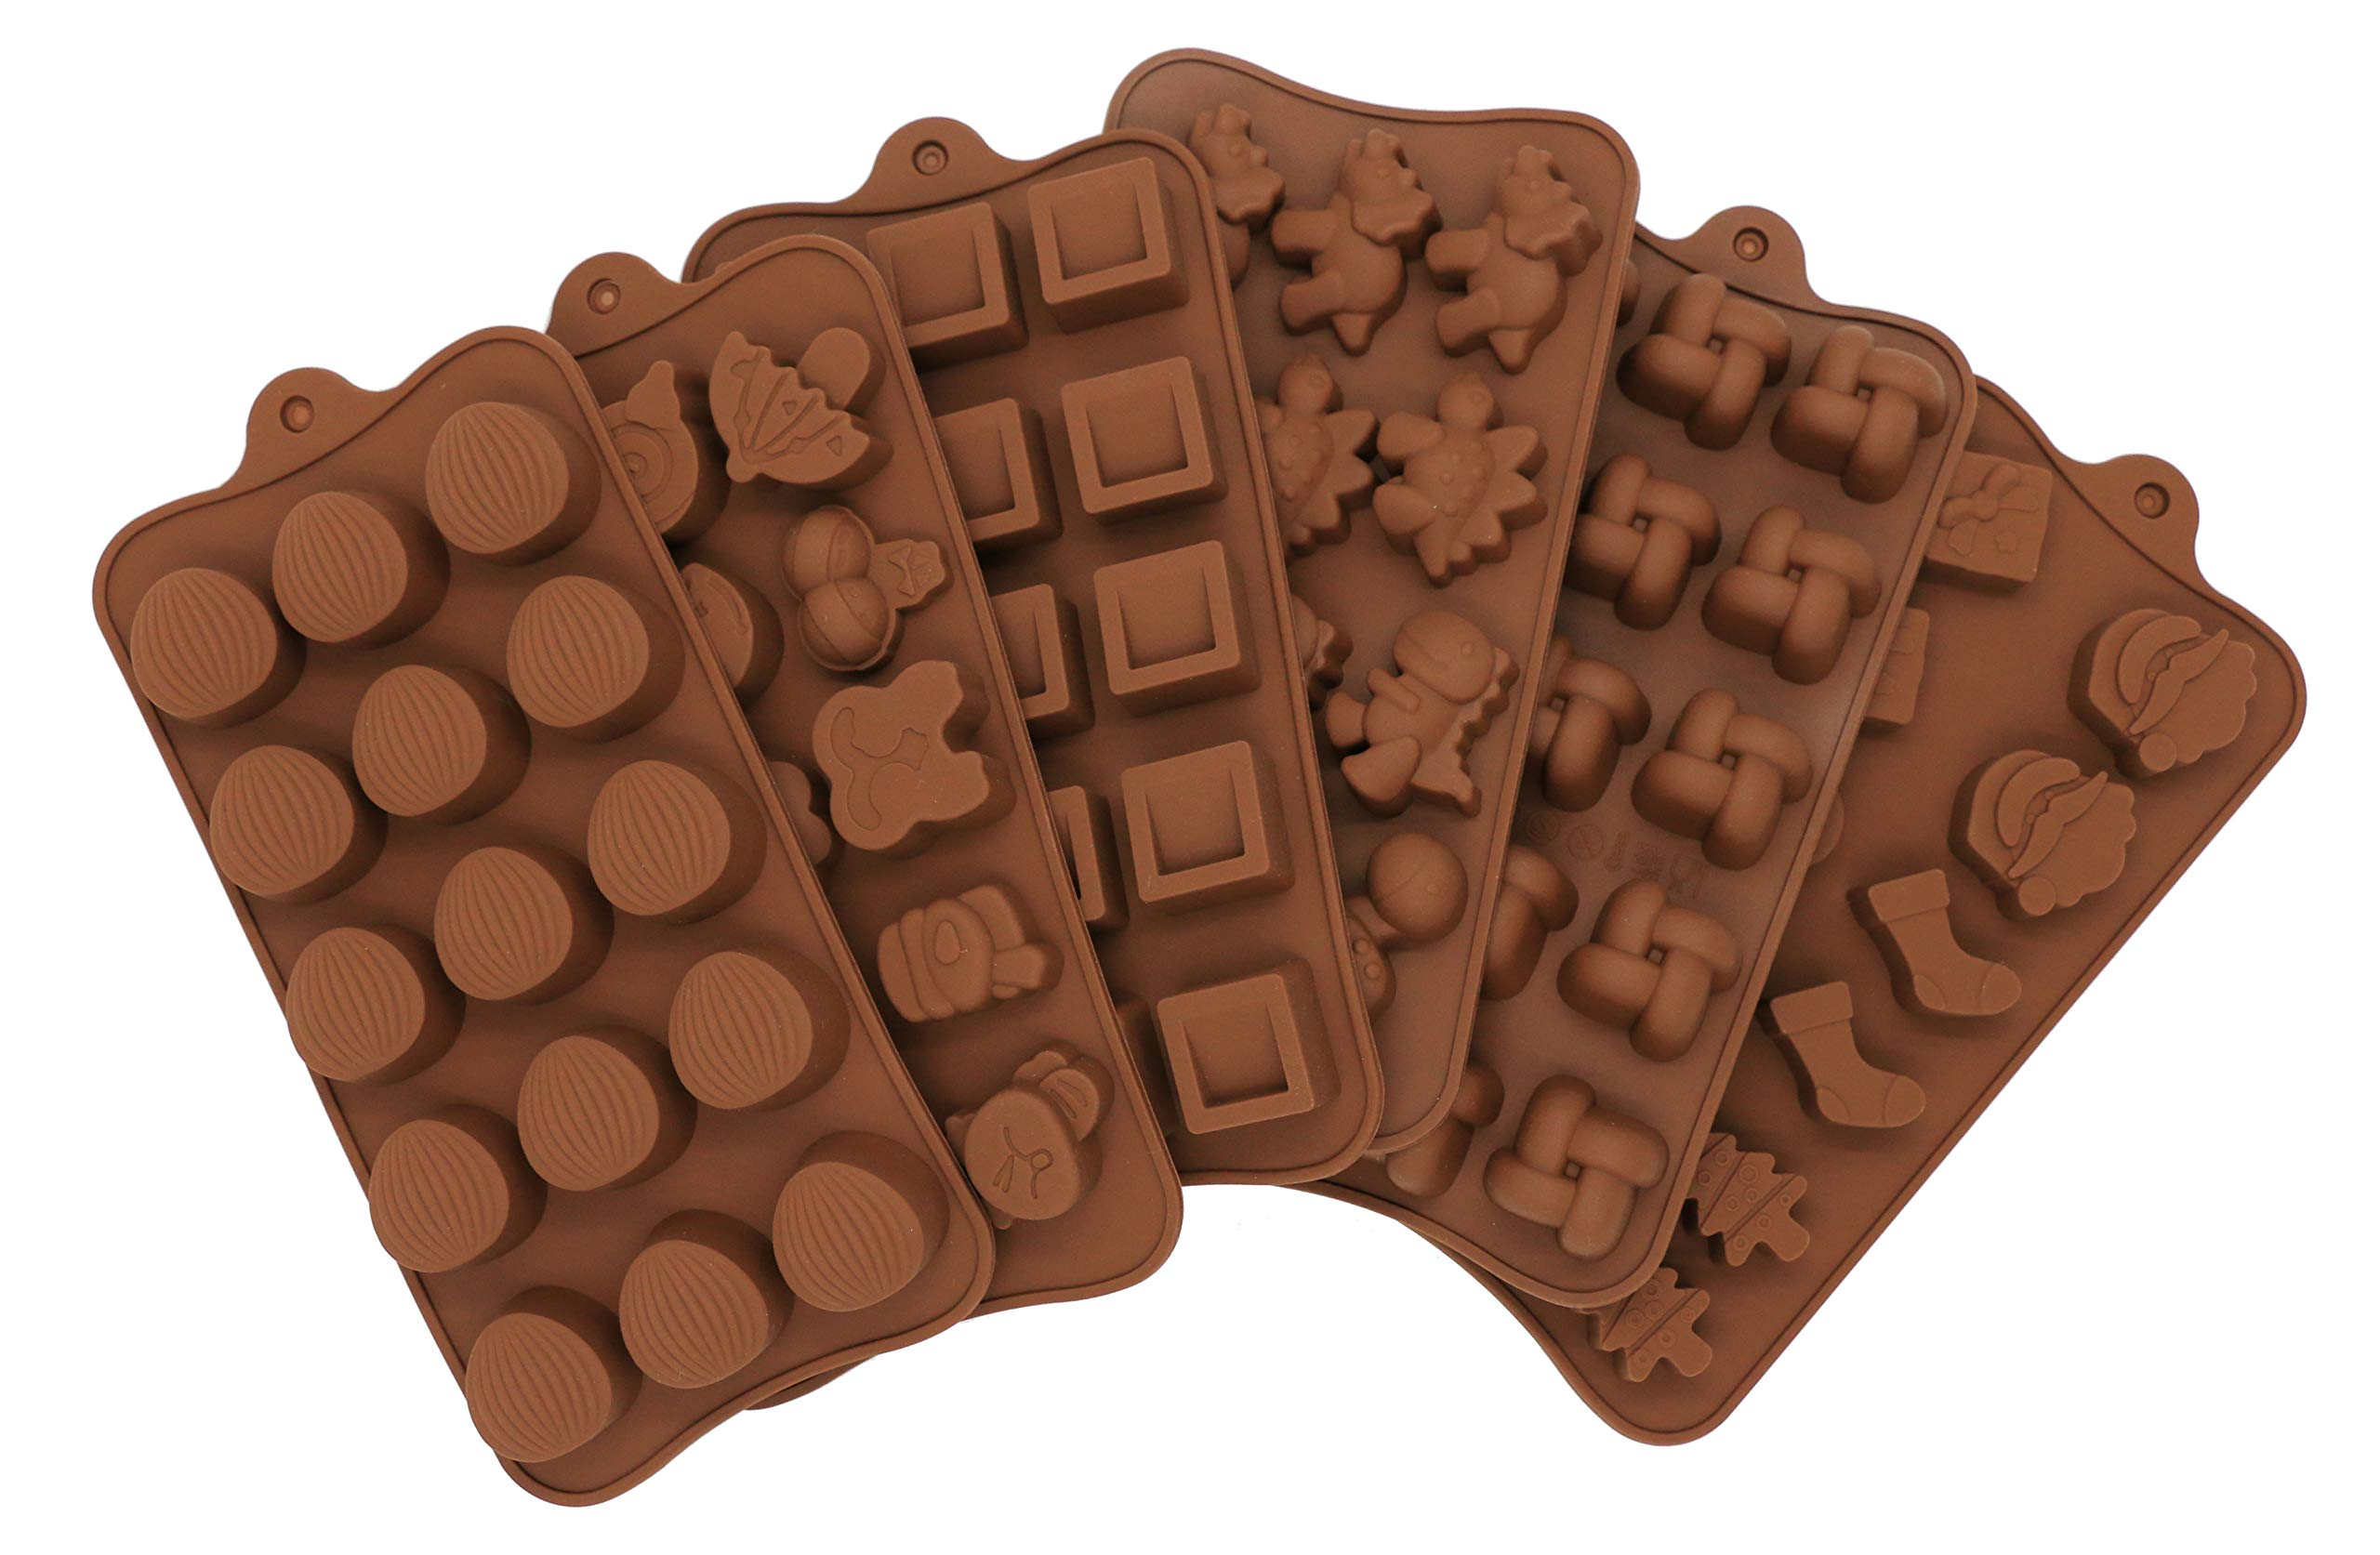 PONECA Chocolate Silicon Molds - Set Of 6 Chocolate Molds Non-stick Chocolate, Jelly and Candy Mold DIY mold 6PCS